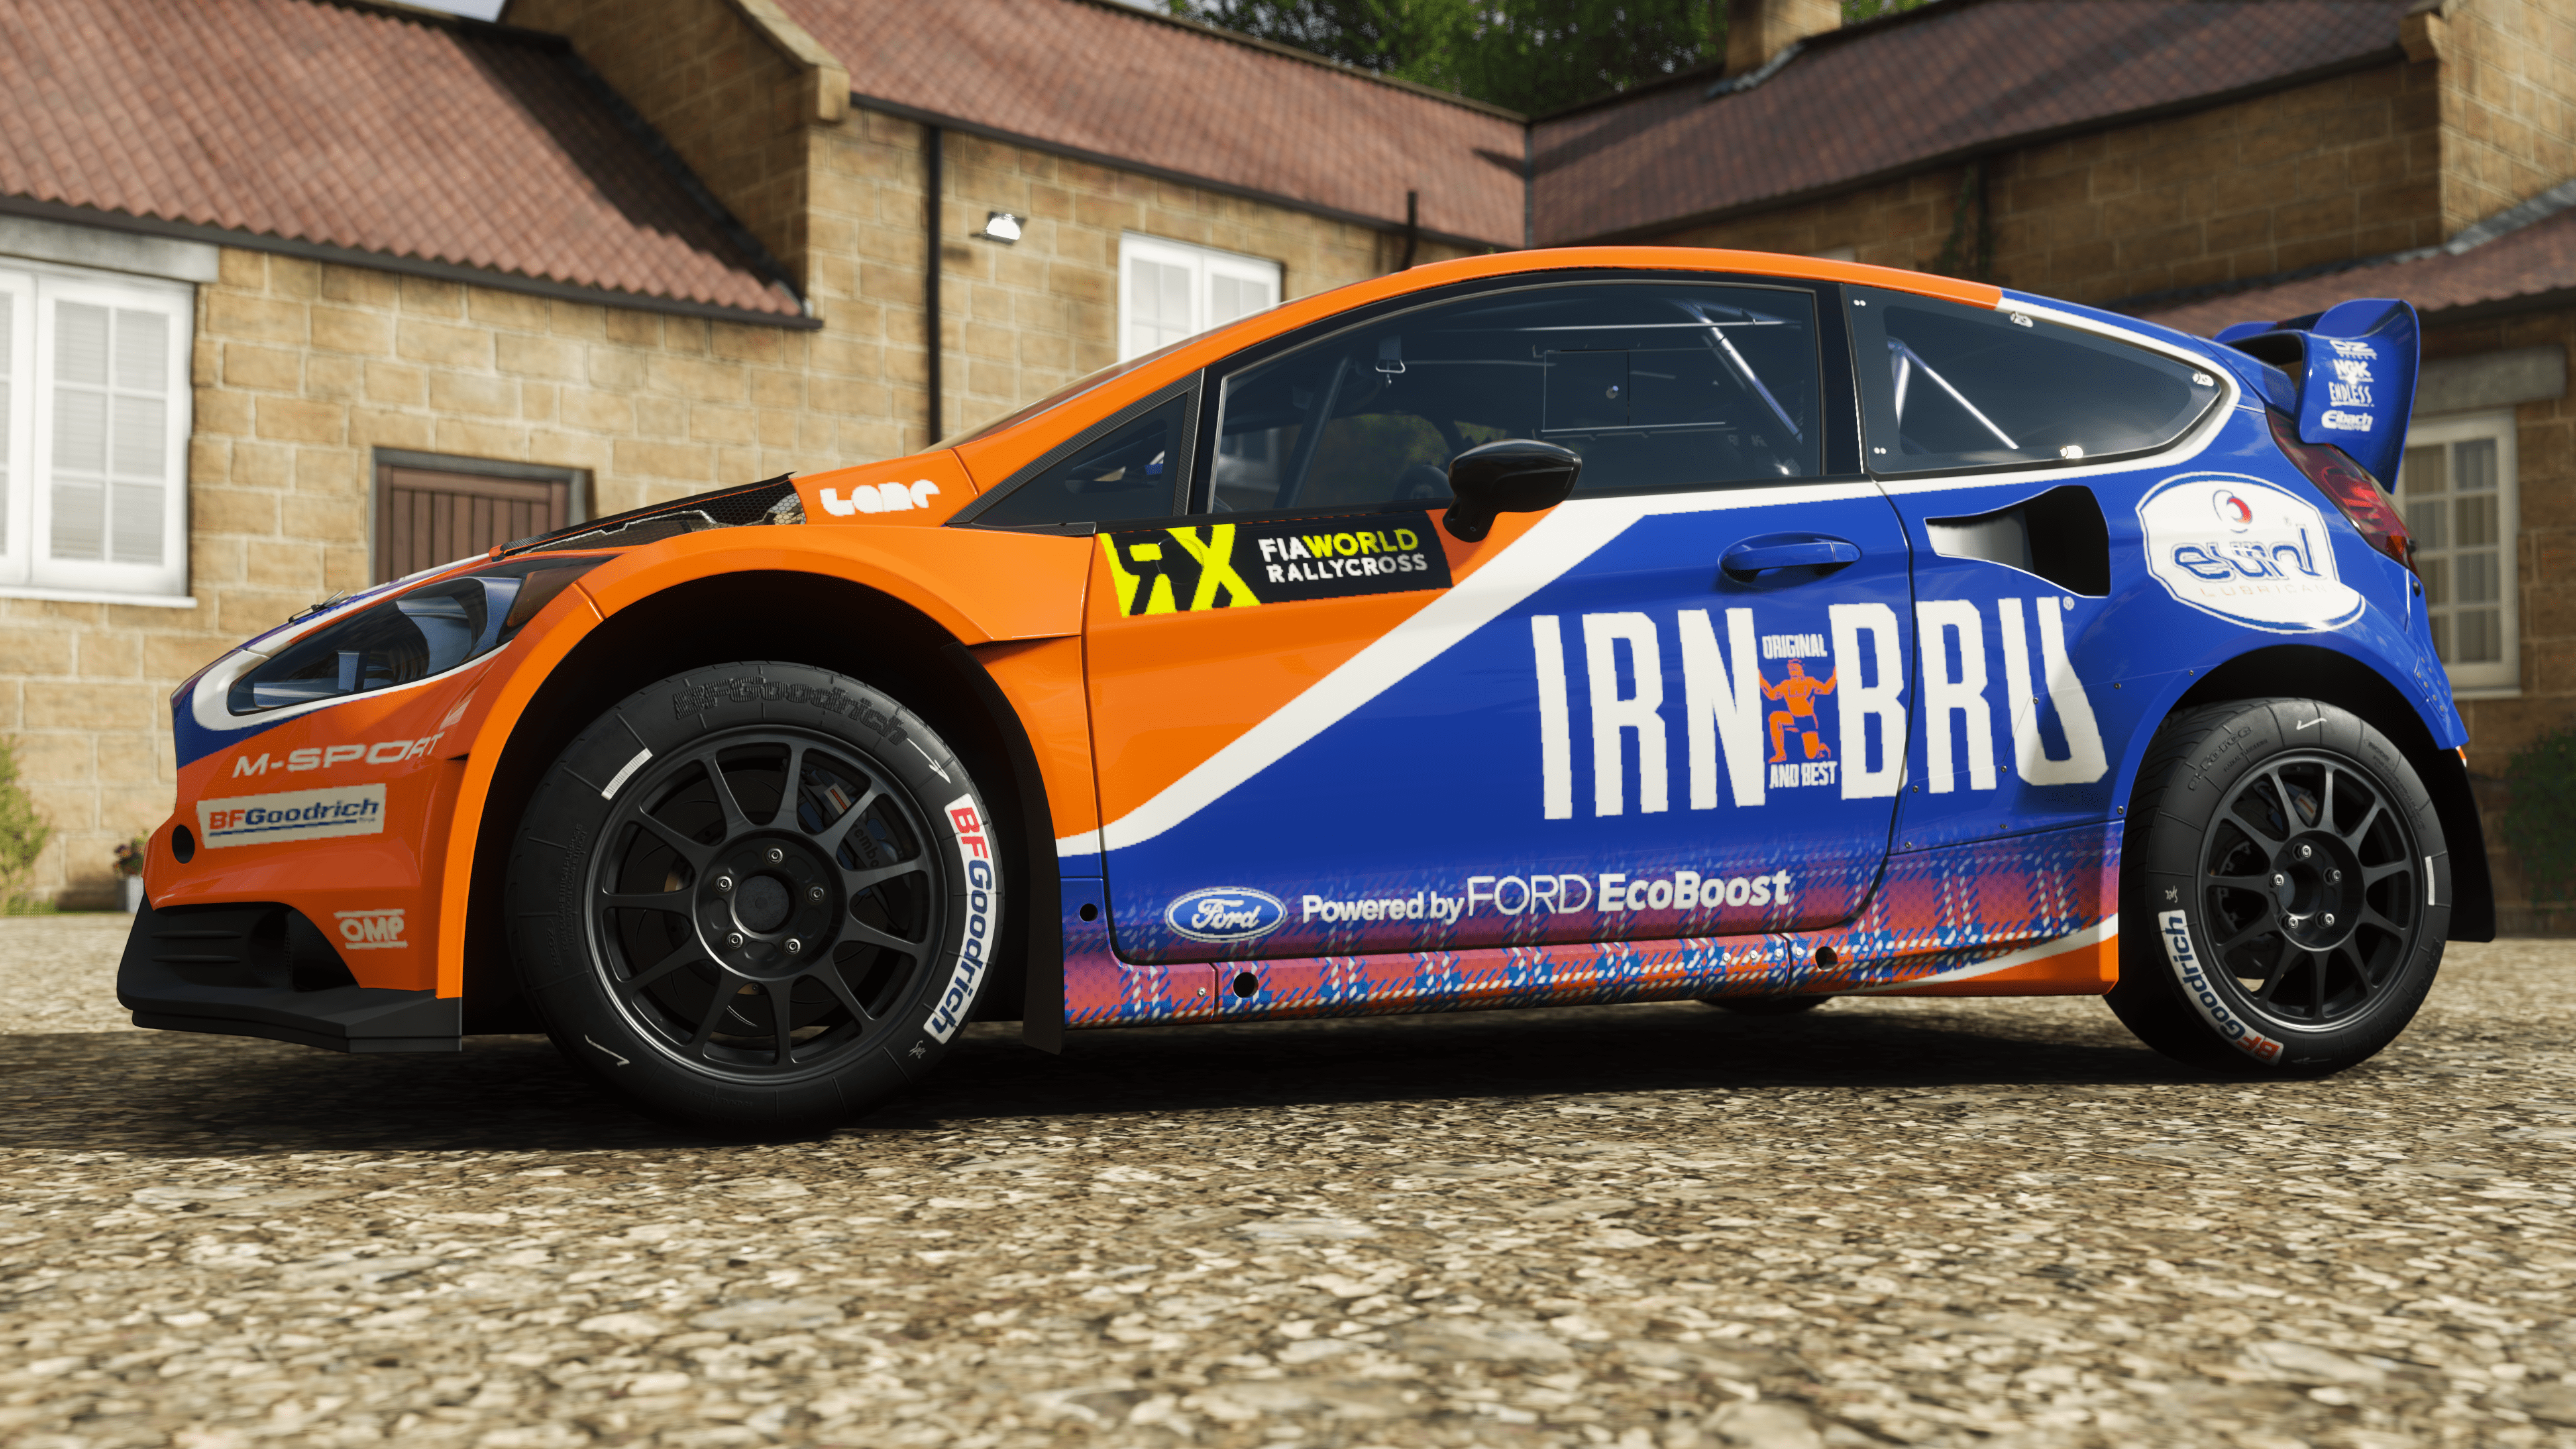 Dinnae feel right to be racing in scotland without the irn bru colors so there you have it my first livery made from scratch in forza horizon 4